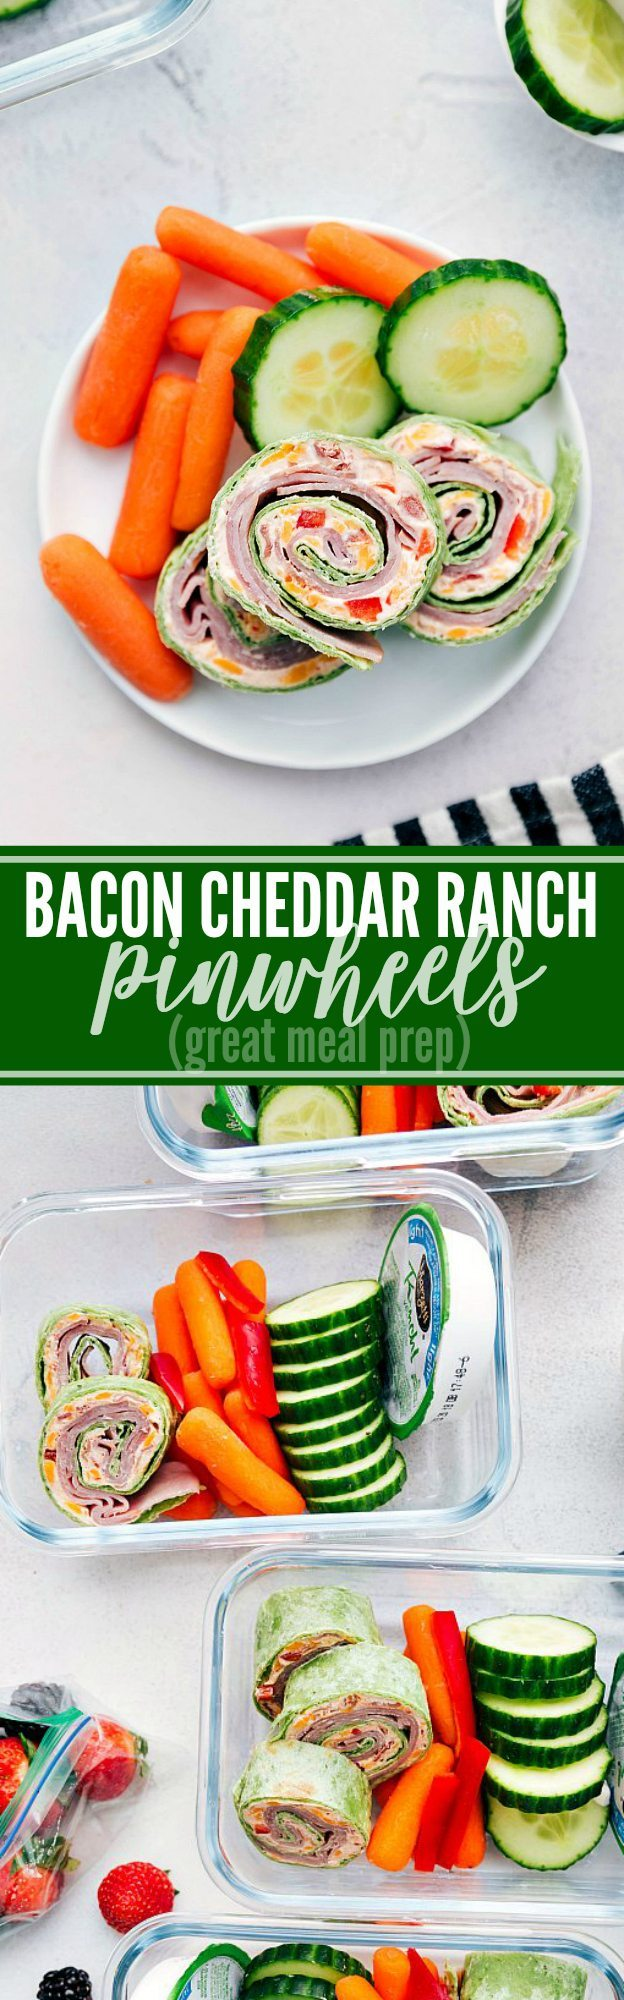 Delicious cheddar, bacon, and ranch pinwheels make a delicious and easy meal prep! via chelseasmessyapron.com